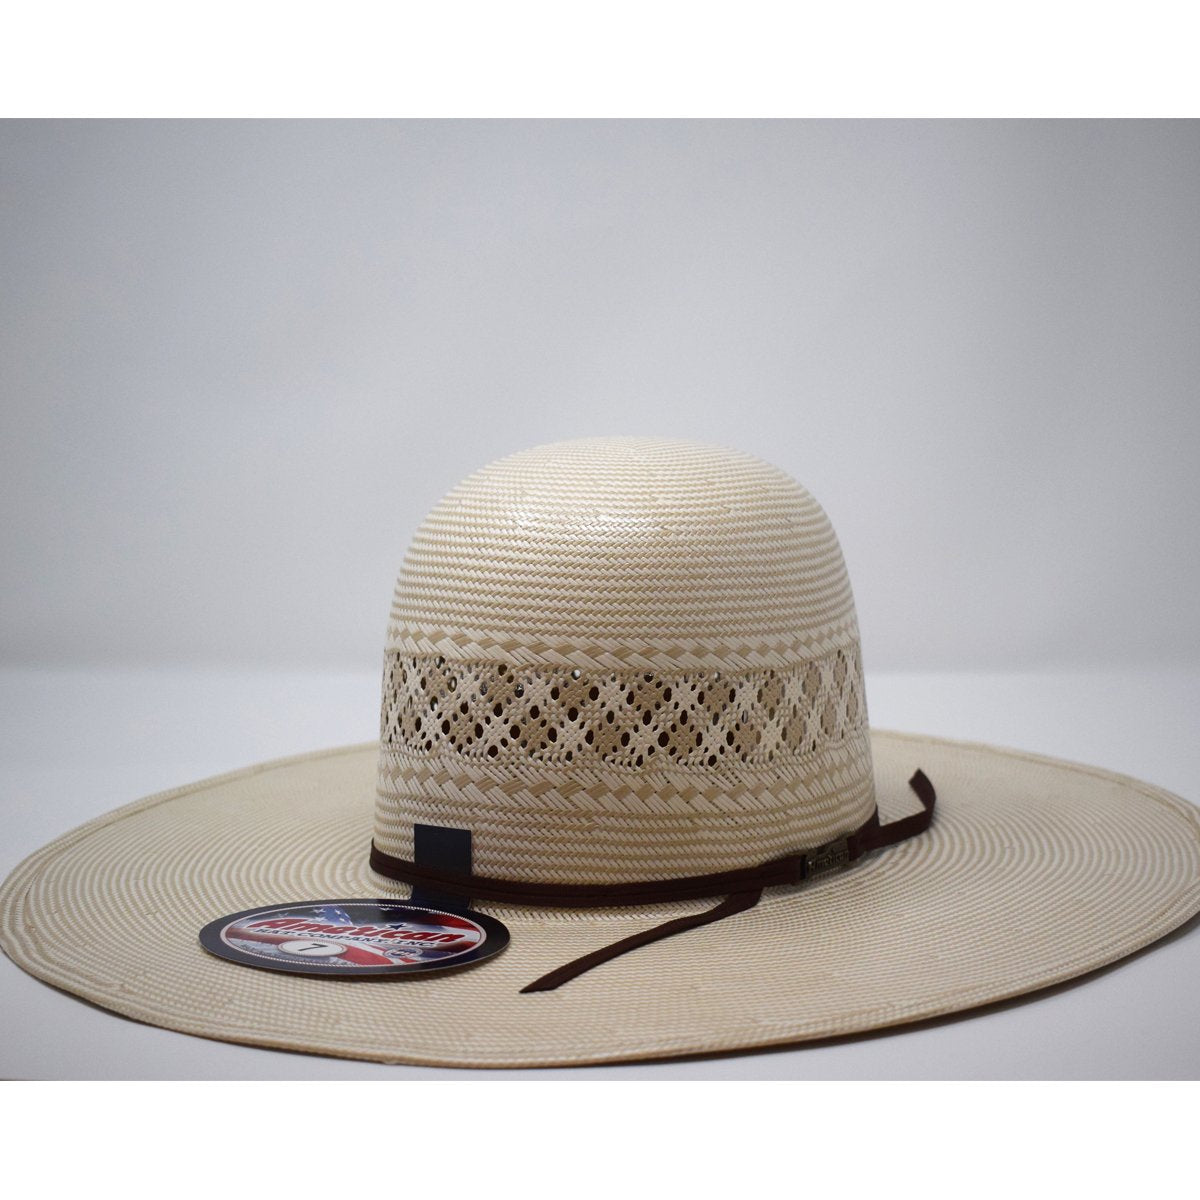 "American Hat Co. 5"" Brim Chocolate Western Straw Hat"